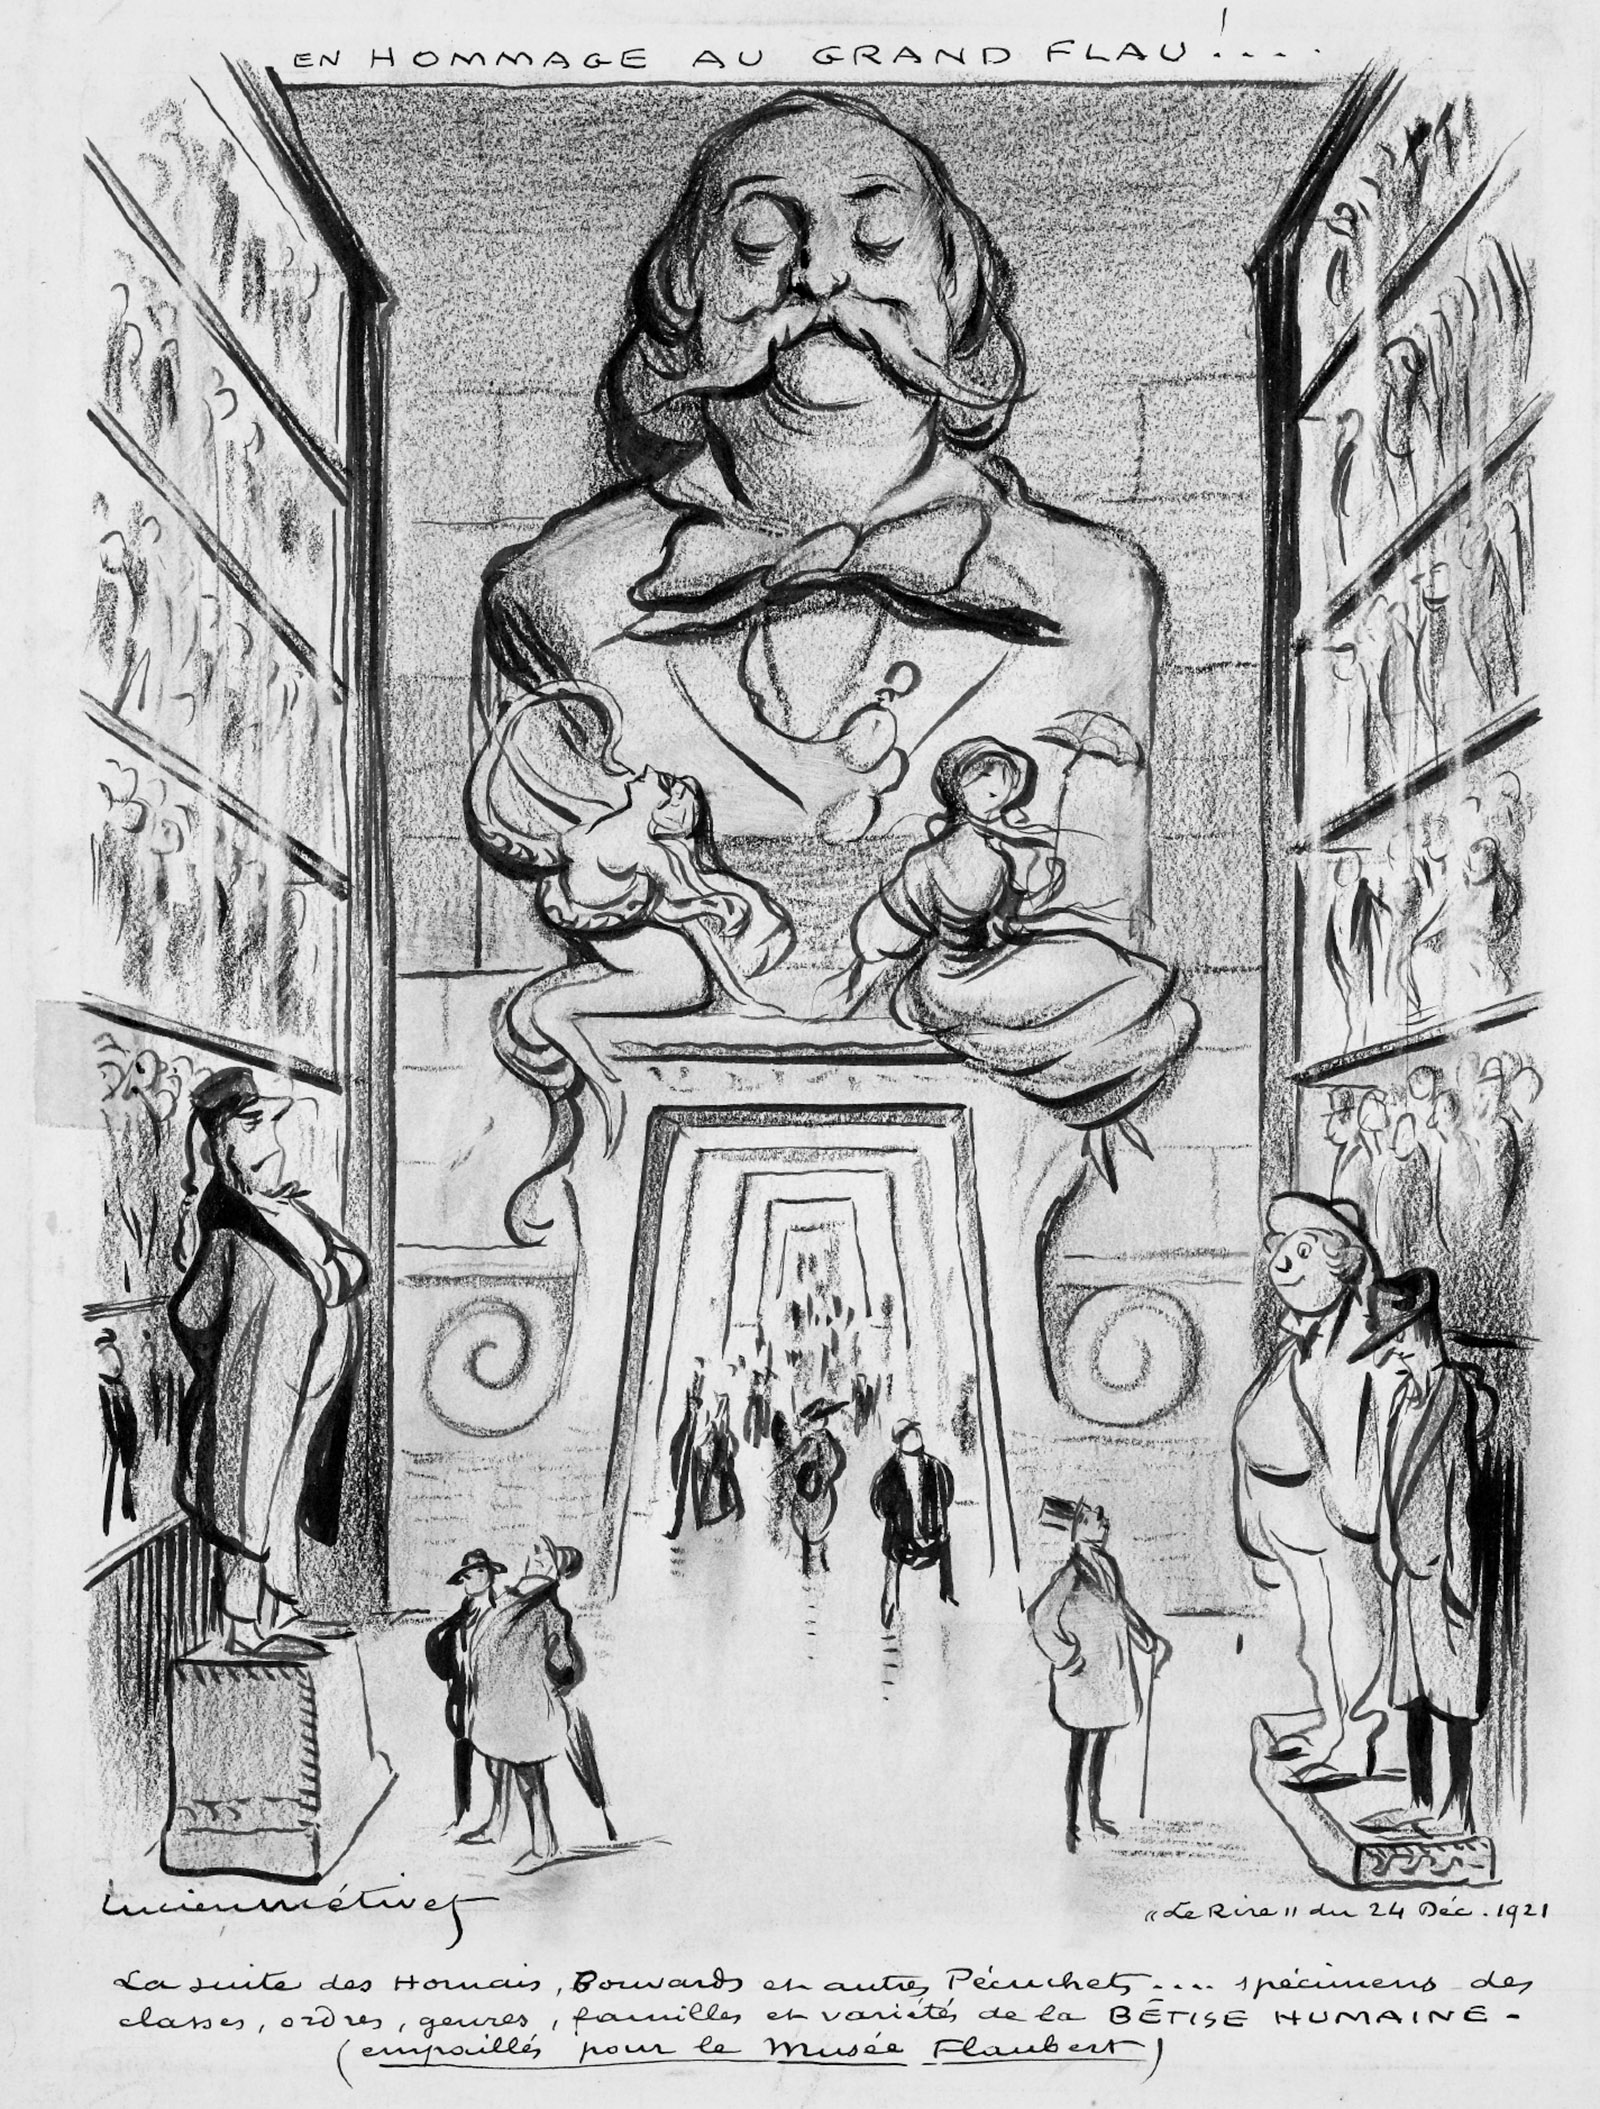 'Homage to the Great Flau!'; drawing by Lucien Métivet for Le Rire on the occasion of Flaubert's centenary, December 1921